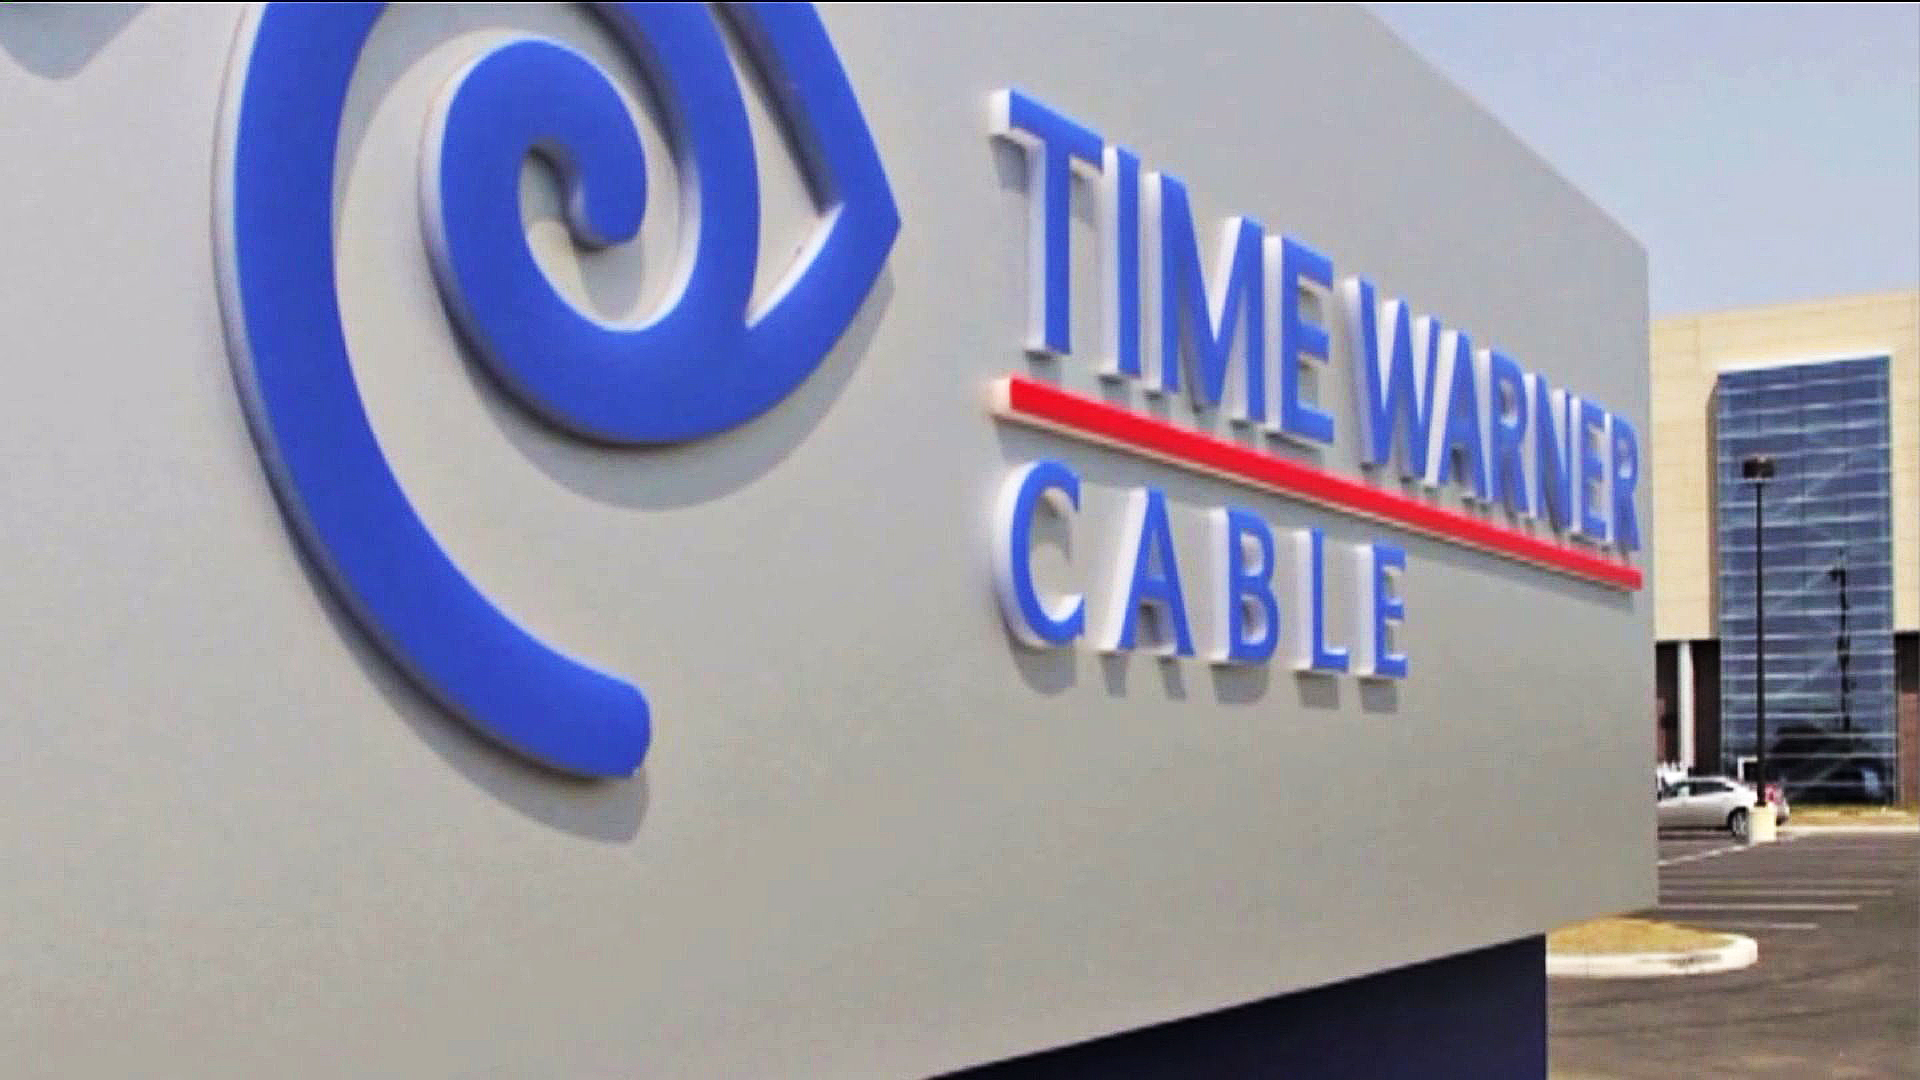 time warner Get the best triple play deals on cable tv, high speed internet, and home phone service from charter spectrum - from $2999 per month each when bundled.